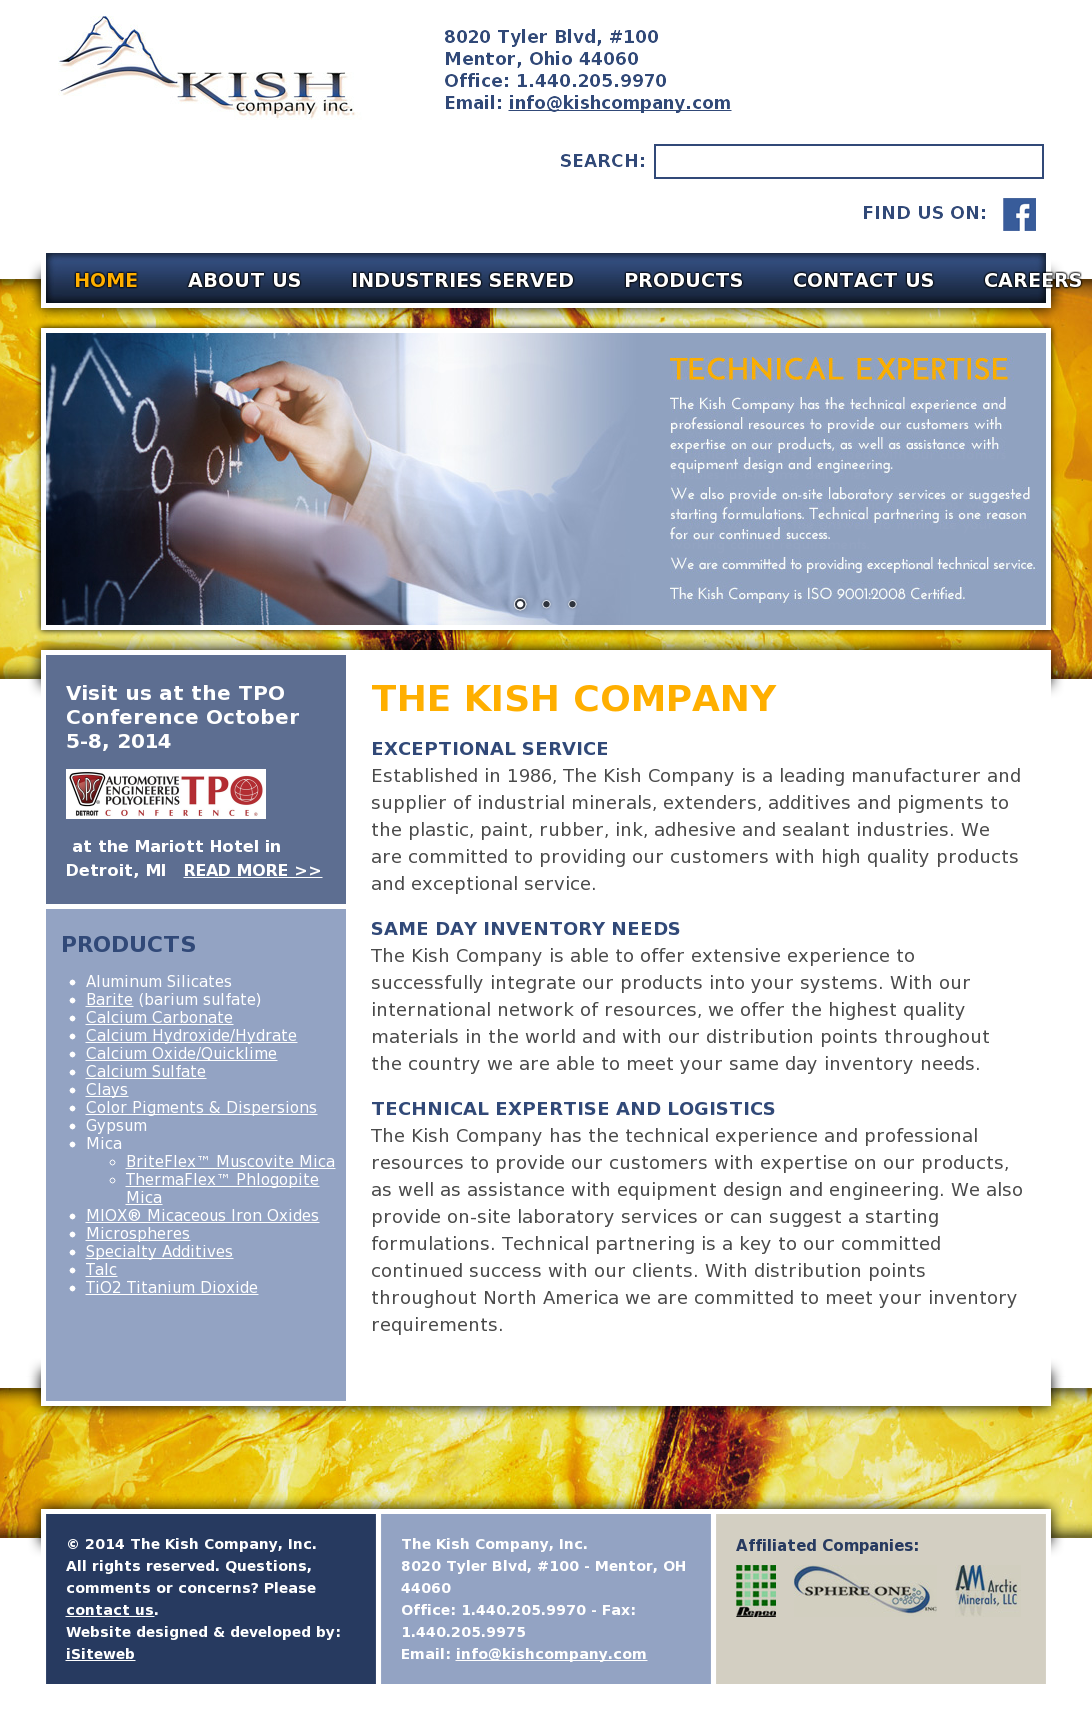 Kish Company Competitors, Revenue and Employees - Owler Company Profile